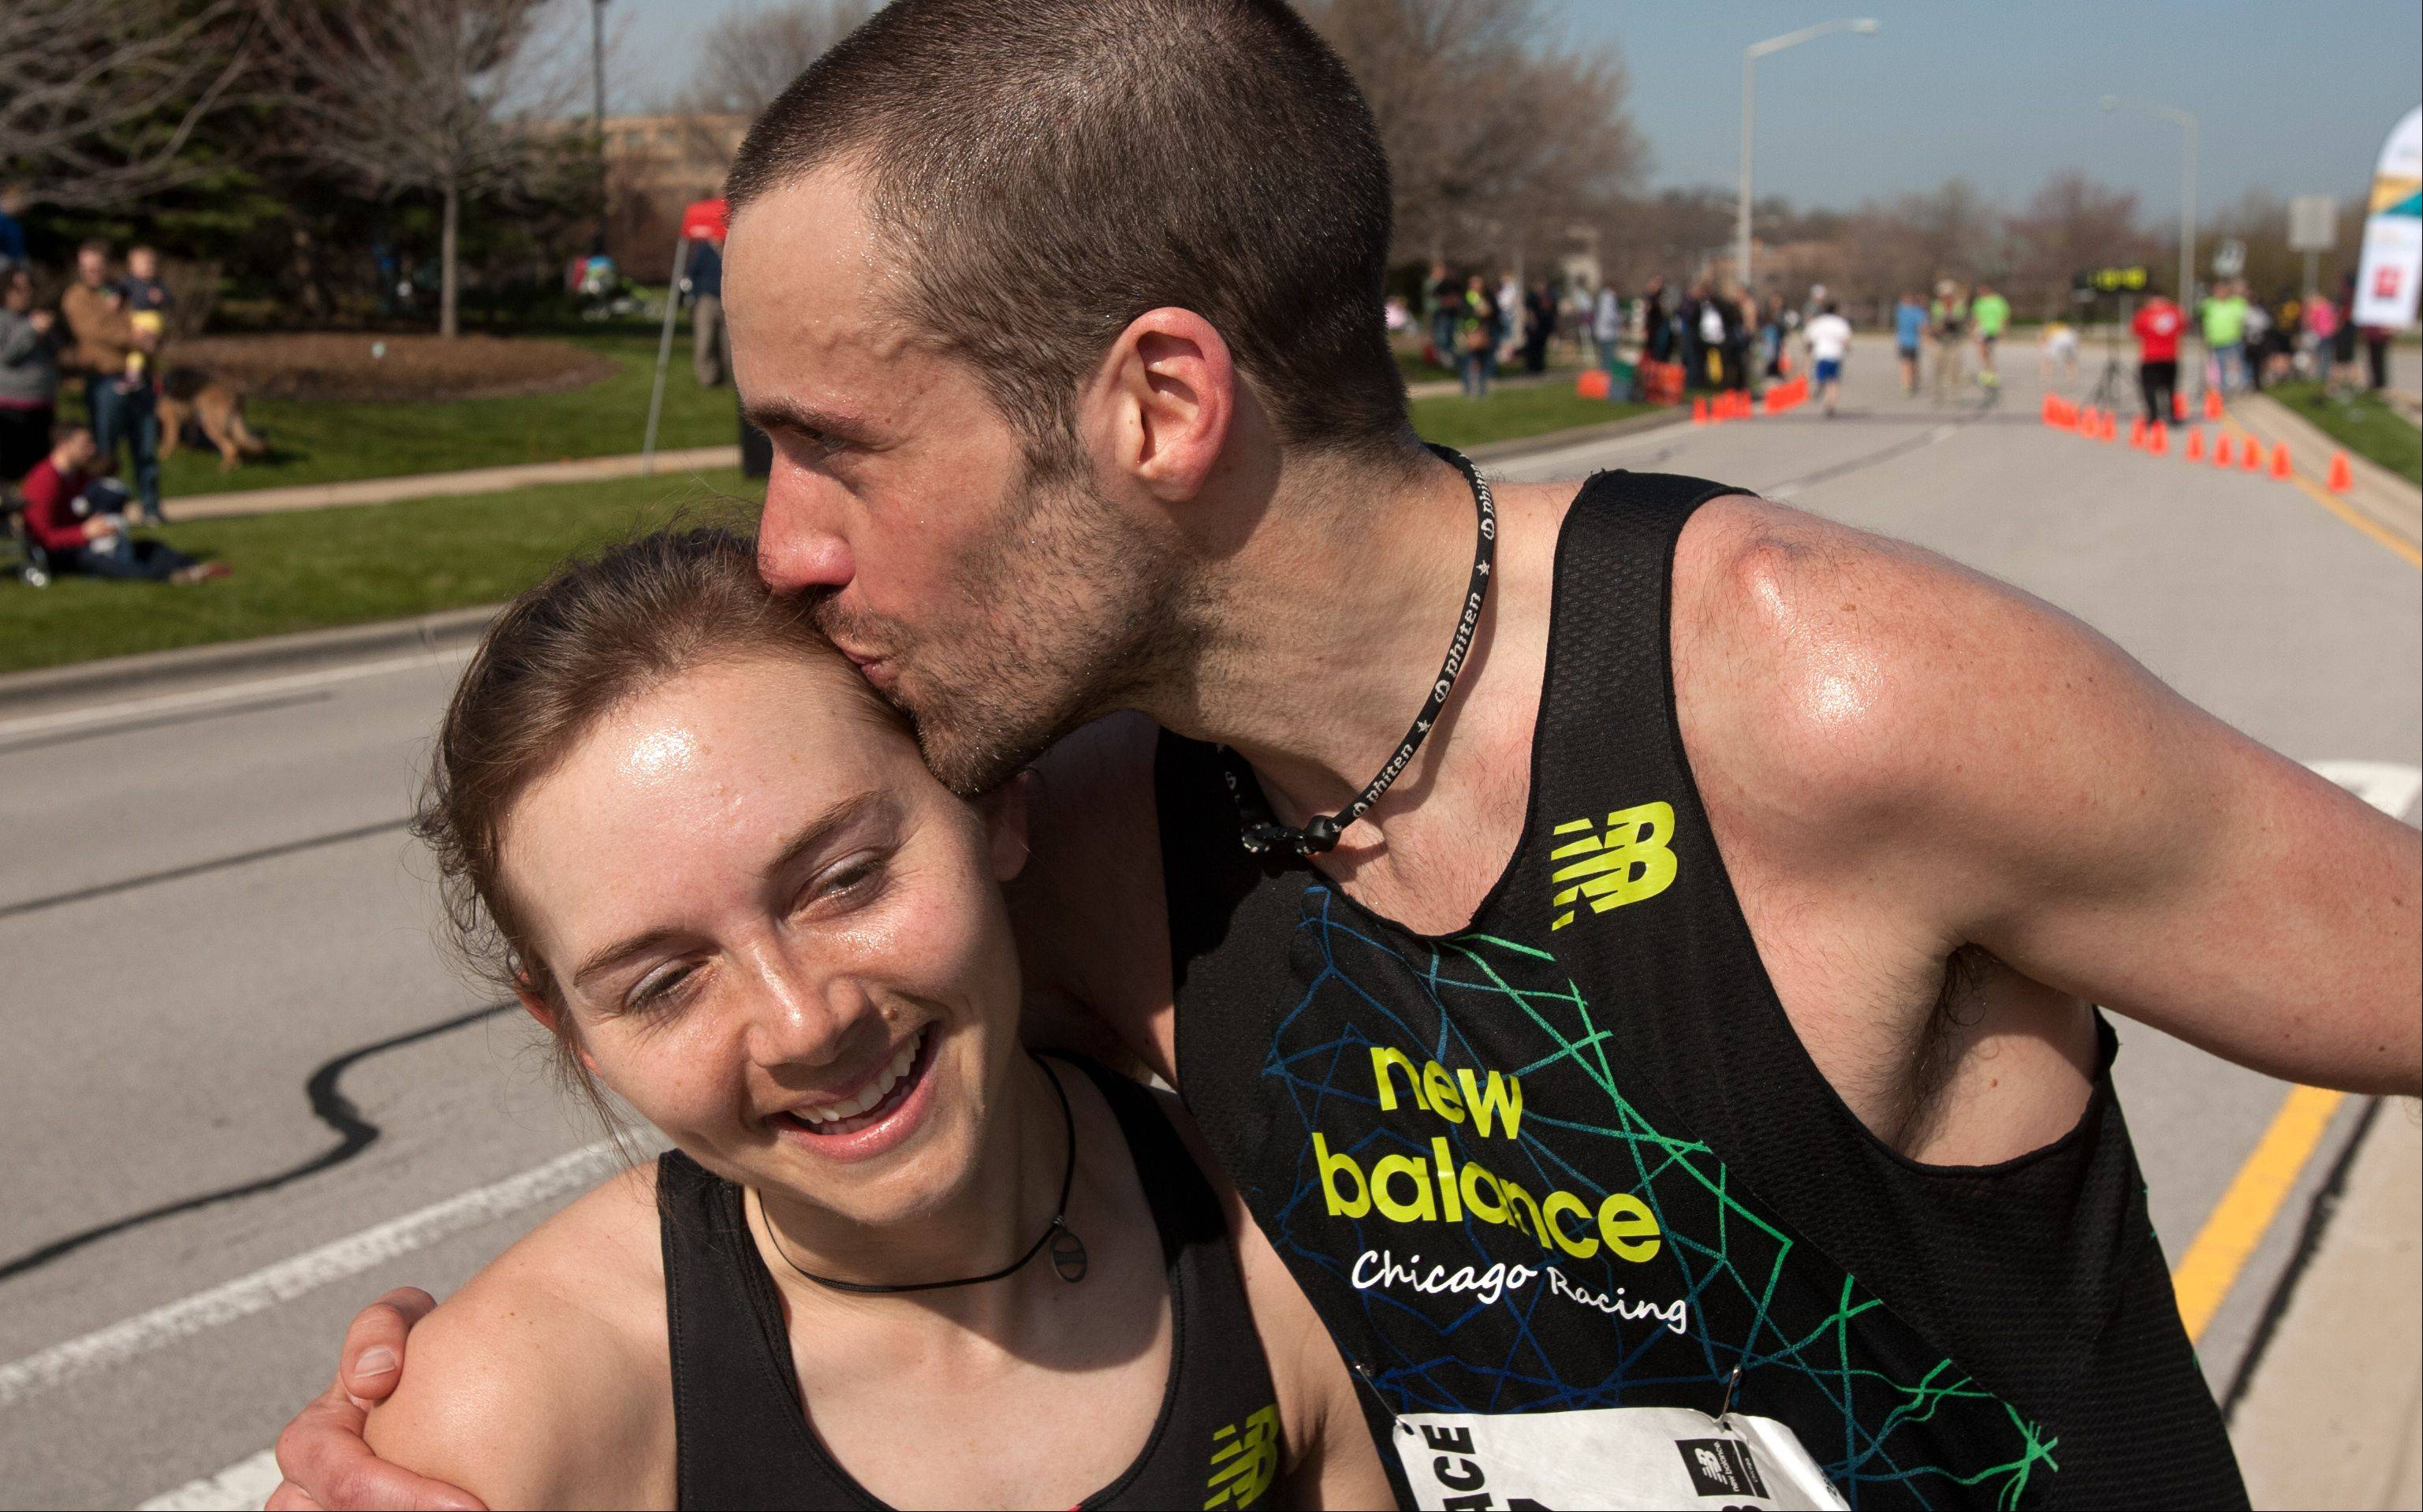 Michael Lucchesi of Lisle congratulates his girlfriend, Kristen Heckert of Lisle, after the Giving DuPage Human Race 5K on Saturday in Downers Grove. Lucchesi finished second, while Heckert finished first among women runners.